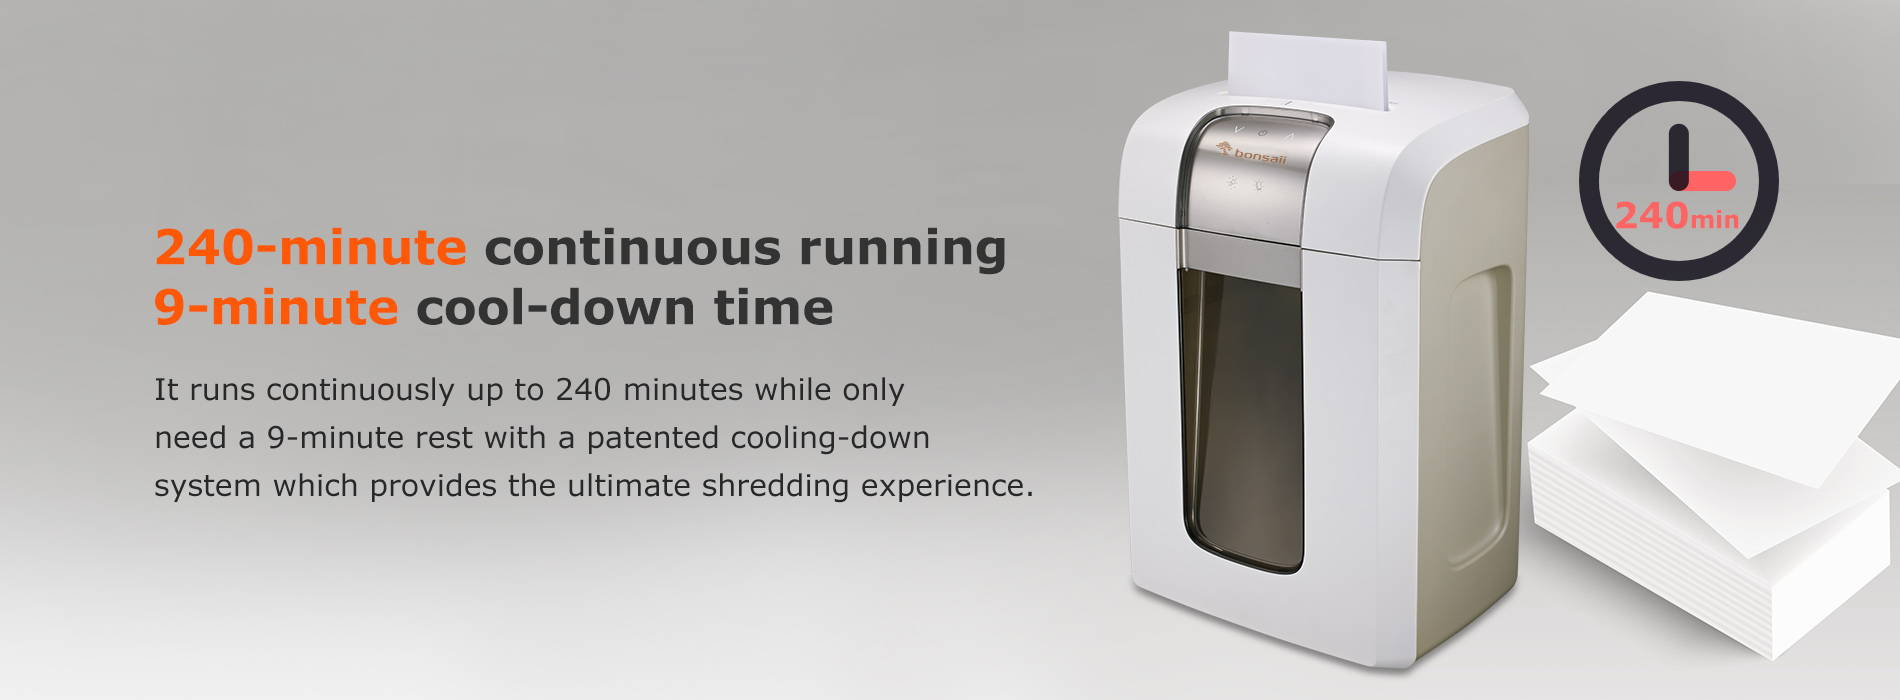 240-minute continuous running & 9-minute cool-down time  It runs continuously up to 240 minutes while only need a 9-minute rest with a patented cooling-down system which provides the ultimate shredding experience.